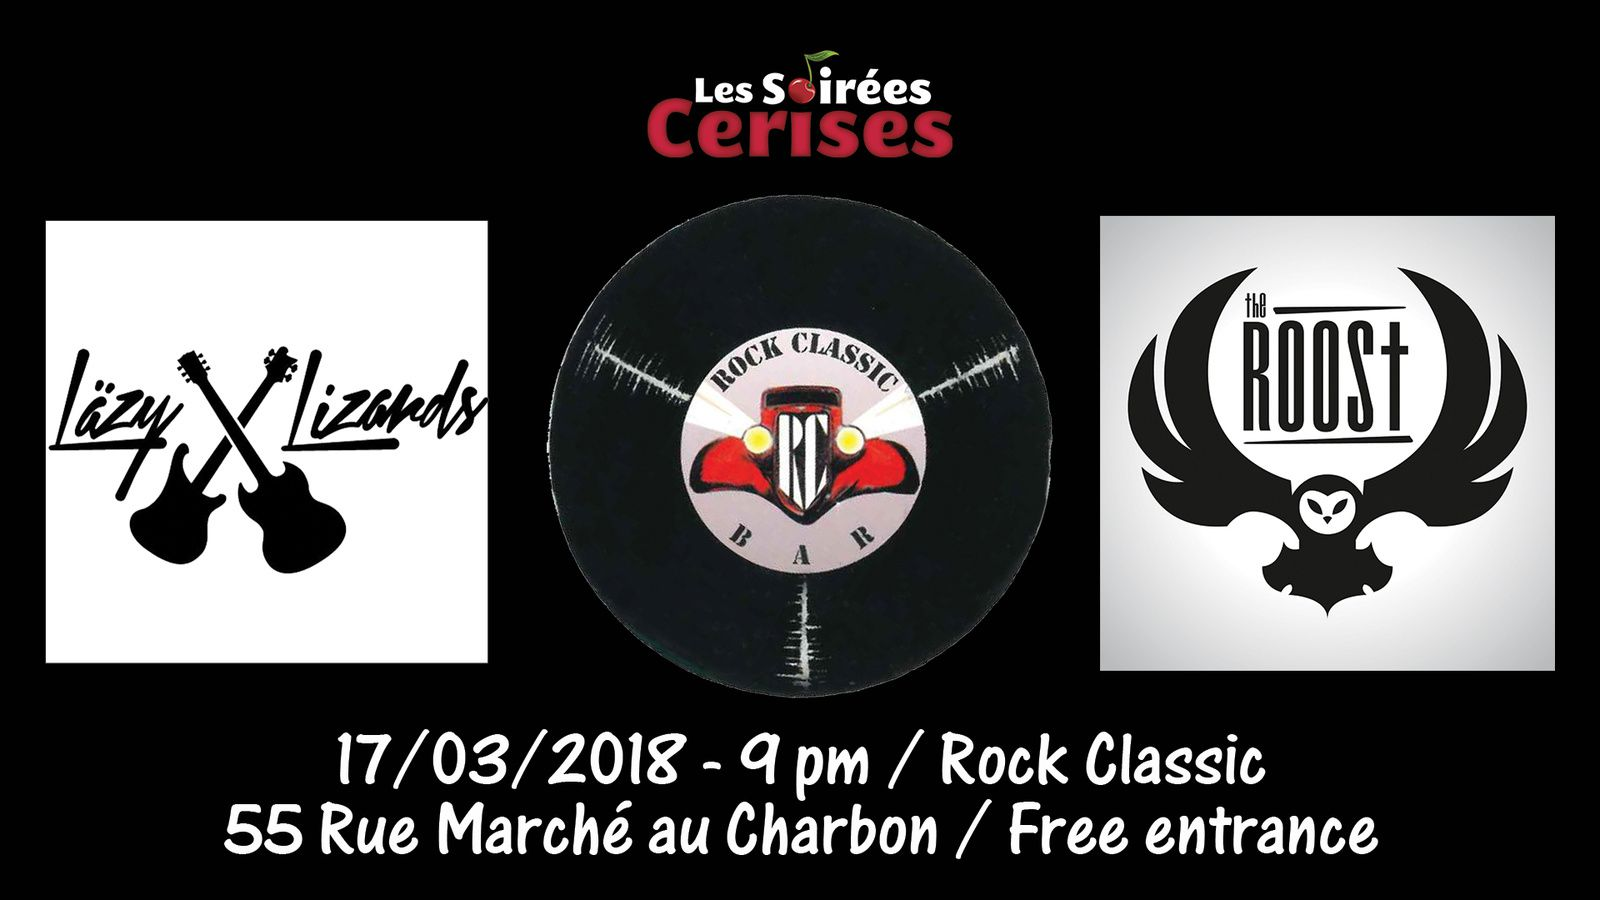 ▶ Lazy Lizards + The Roost au Rock Classic - 17/03/2018 - 21h00 - Entrée gratuite !